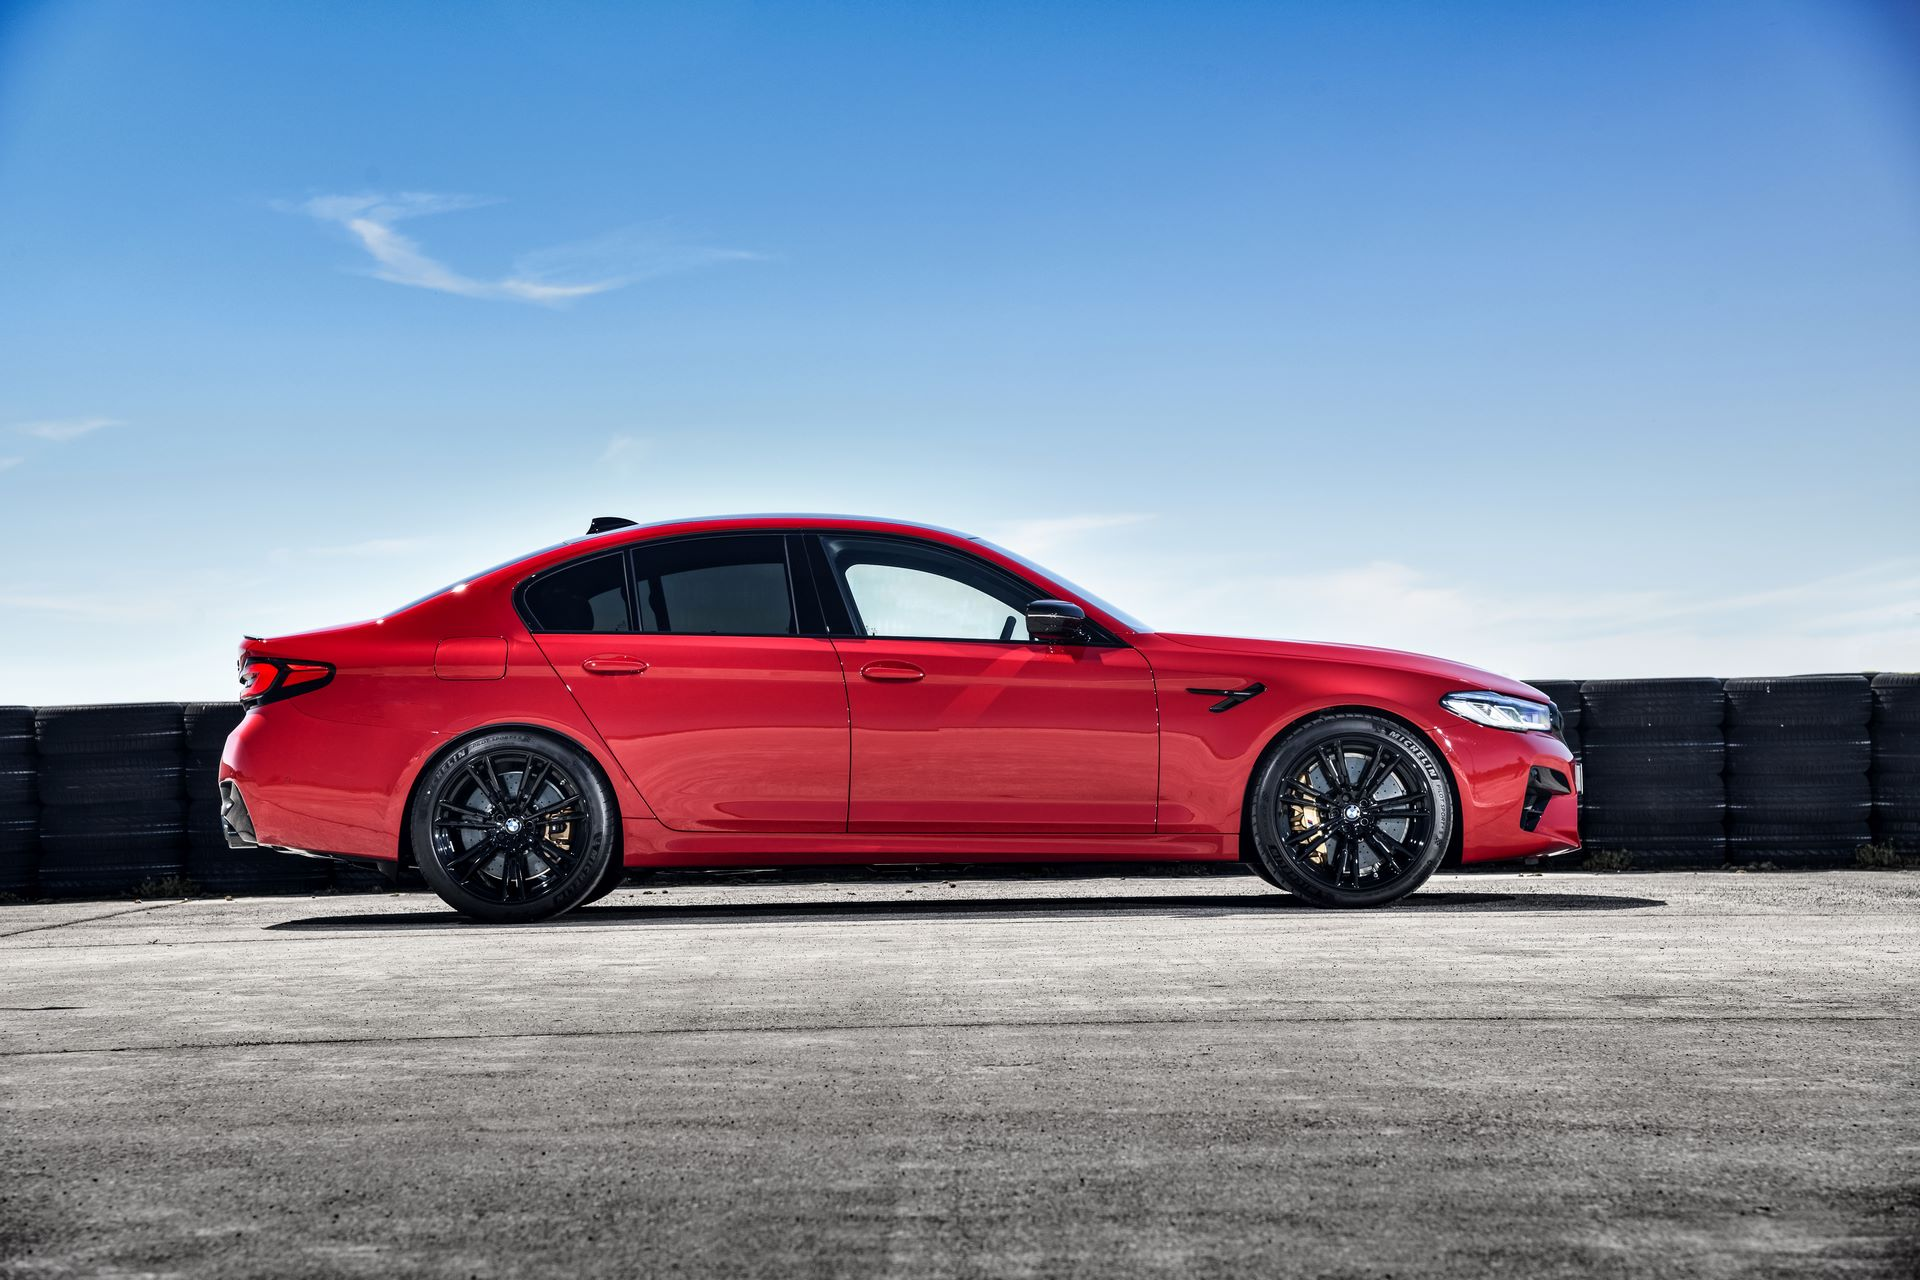 BMW-M5-and-BMW-M5-Competition-facelift-2020-28